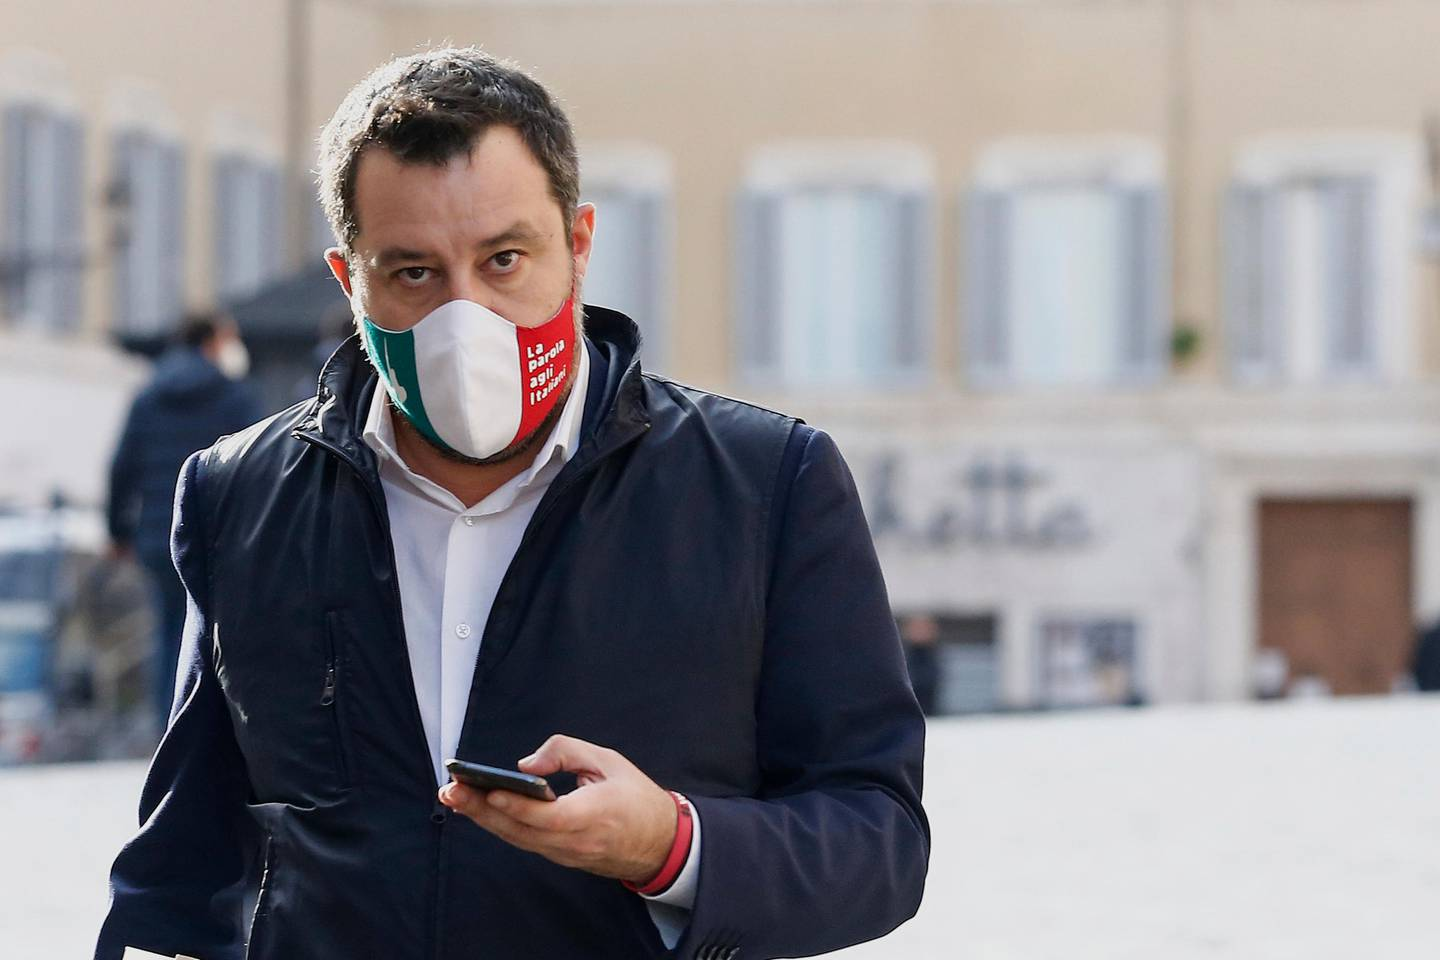 Leader of The League party, Matteo Salvini, leaves after a center-right coalition's meeting in Rome, Wednesday, Feb. 3, 3021. Former European Central Bank President Mario Draghi has agreed to try to form a non-political government to steer Italy through the coronavirus pandemic. (Cecilia Fabiano/LaPresse via AP)